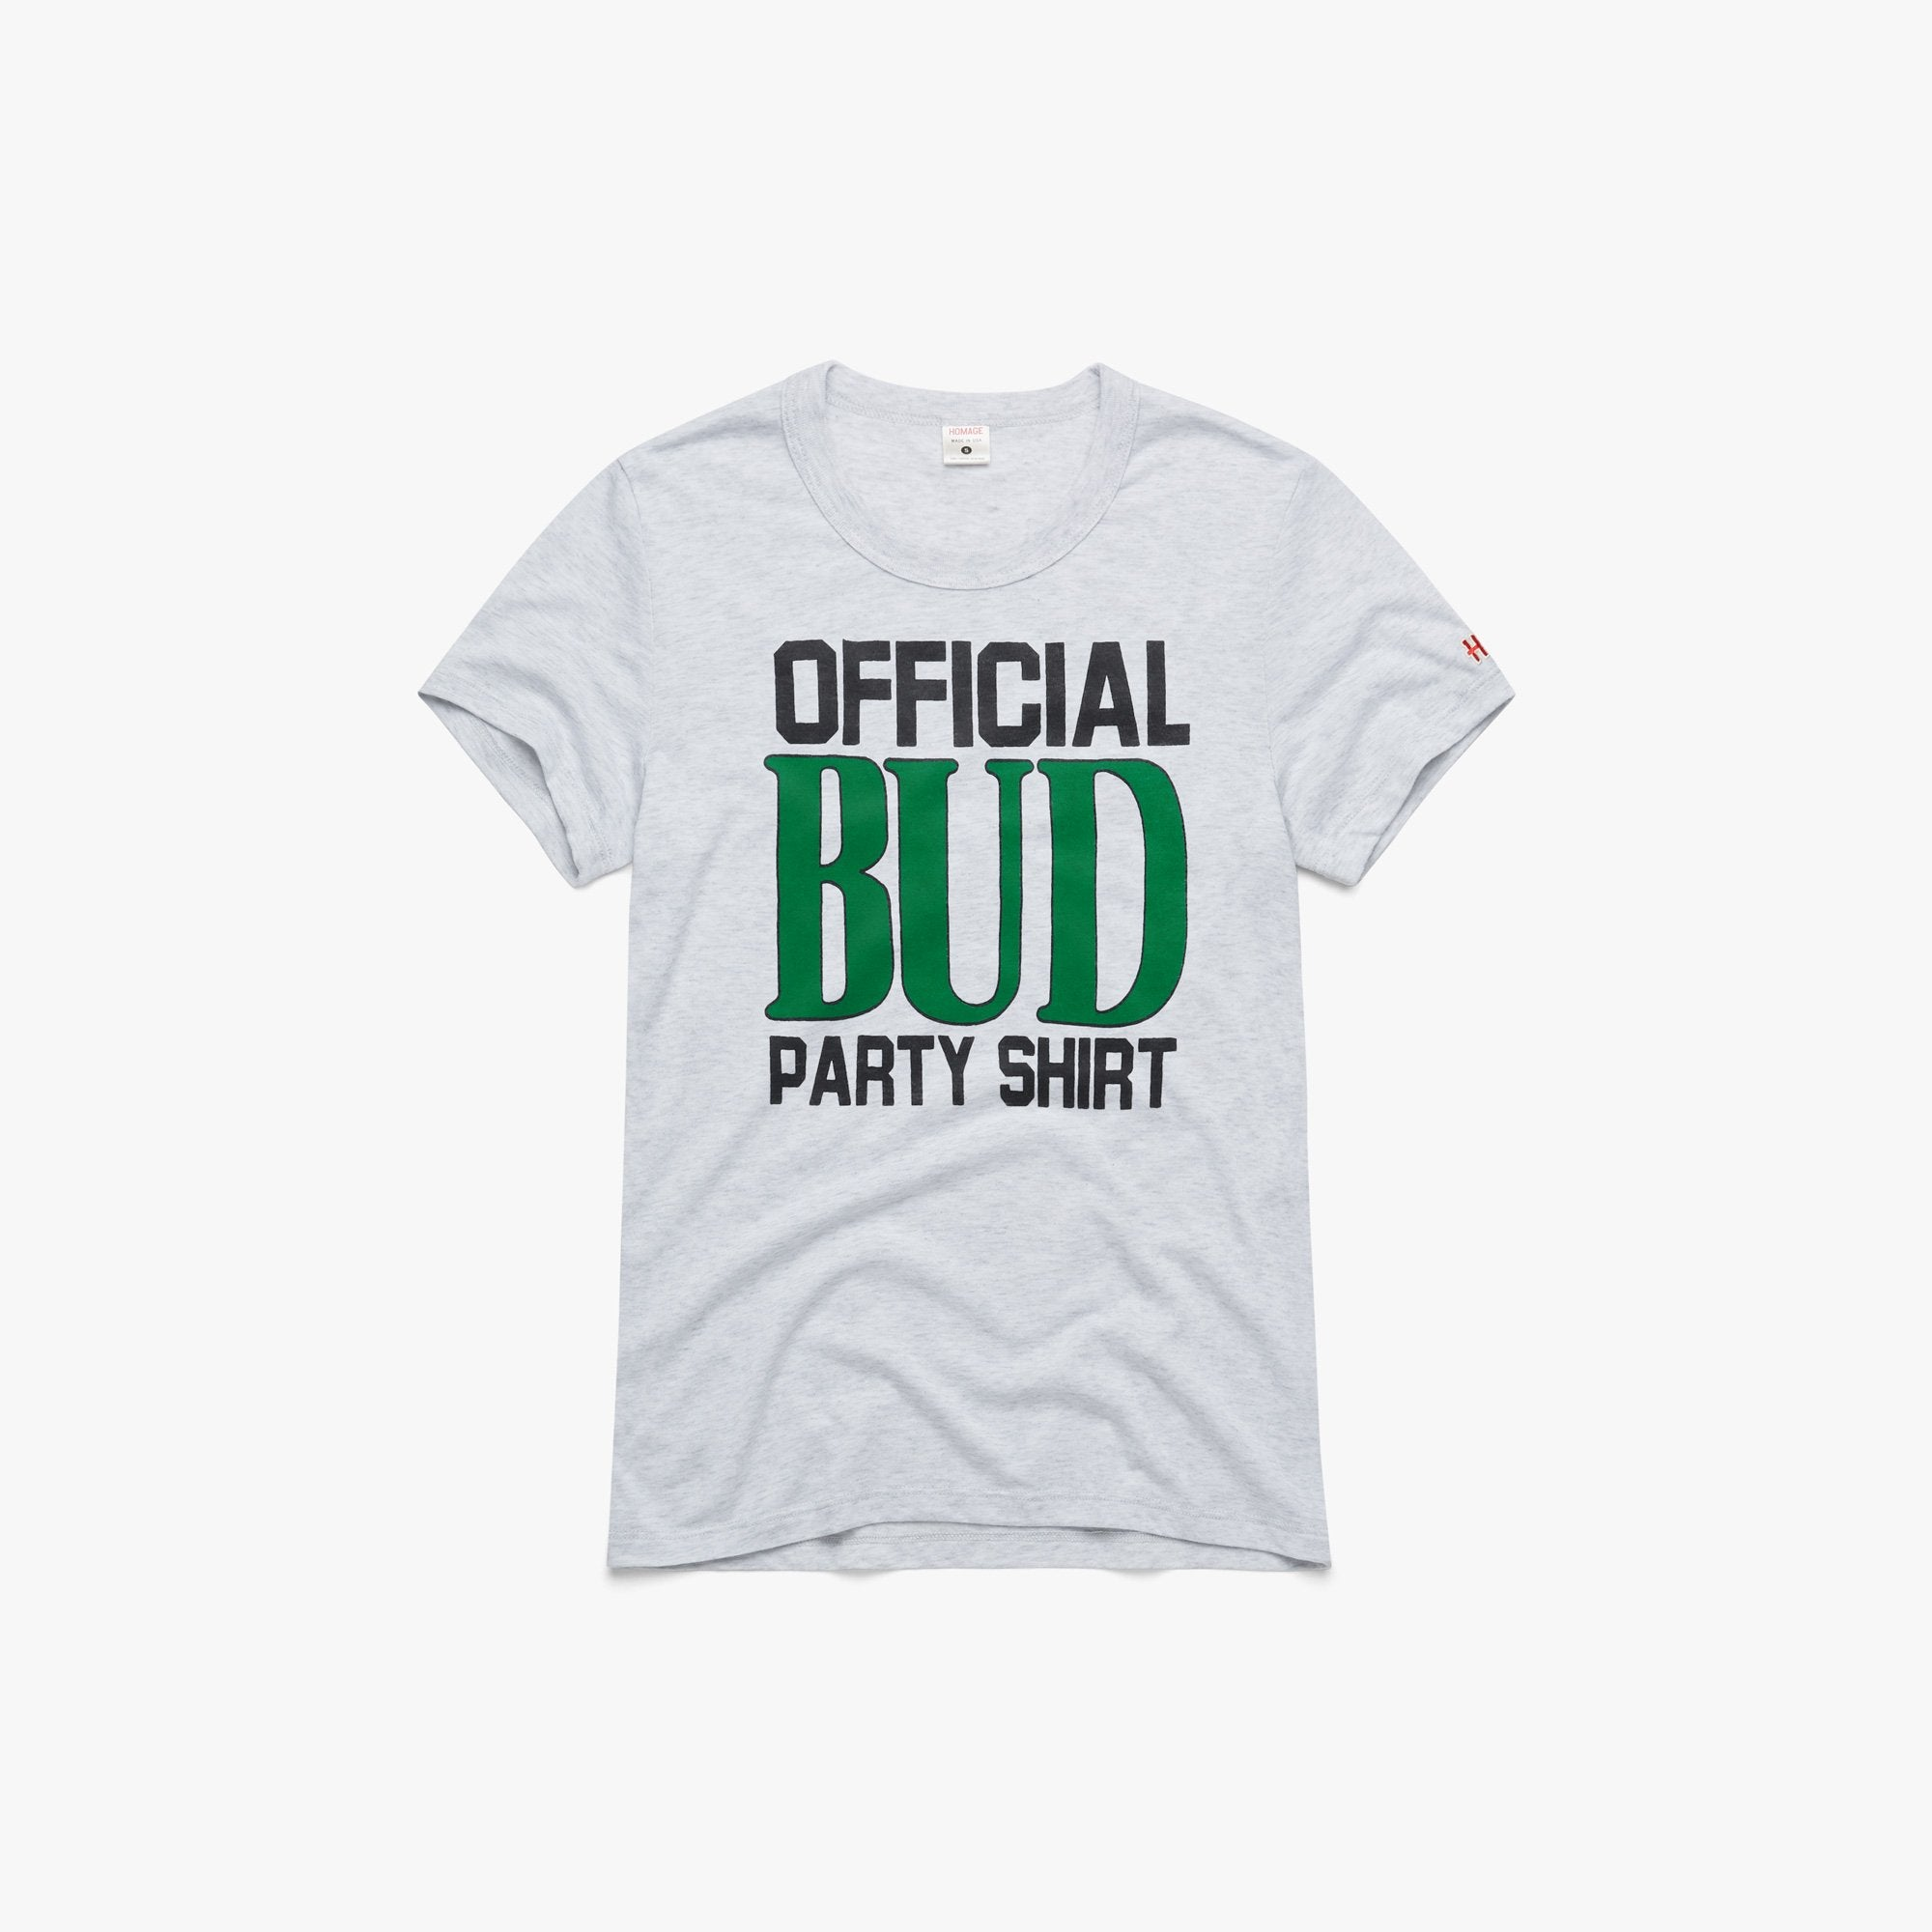 Women's Official Bud Party Shirt Vintage Tee